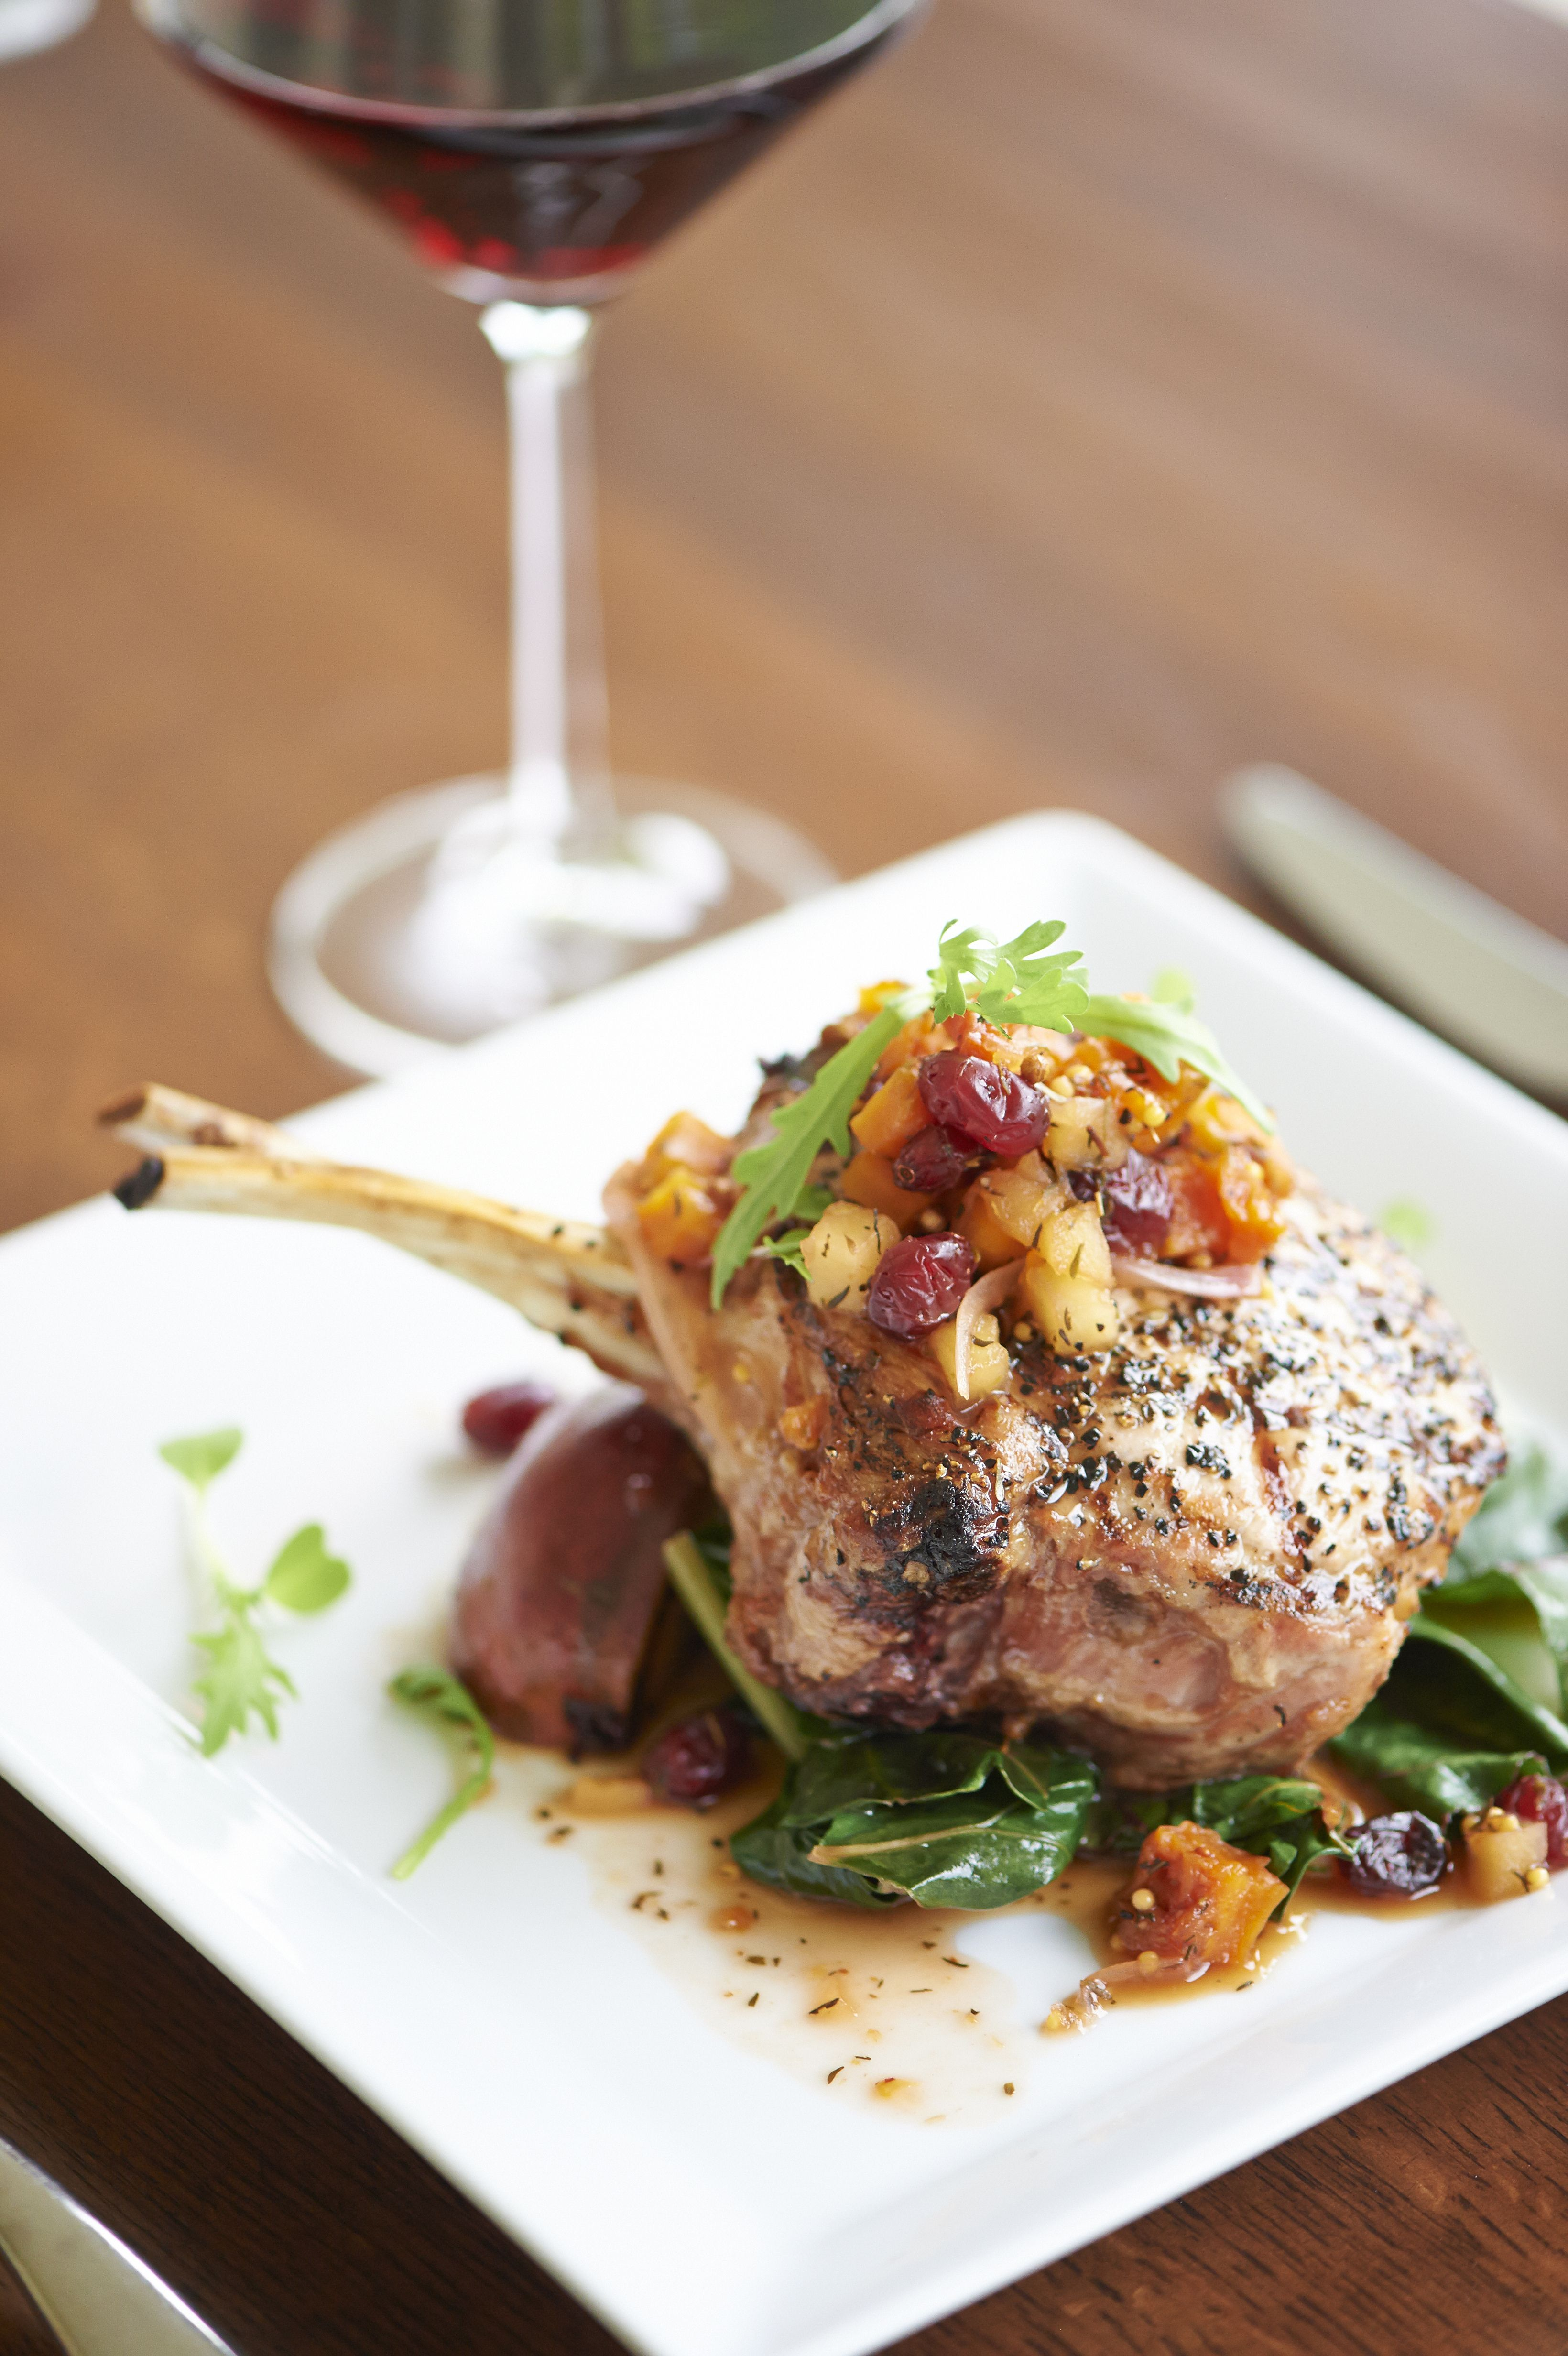 San Antonio Fine Dining Restaurants Texas Hill Country In Upscale Pork Chop